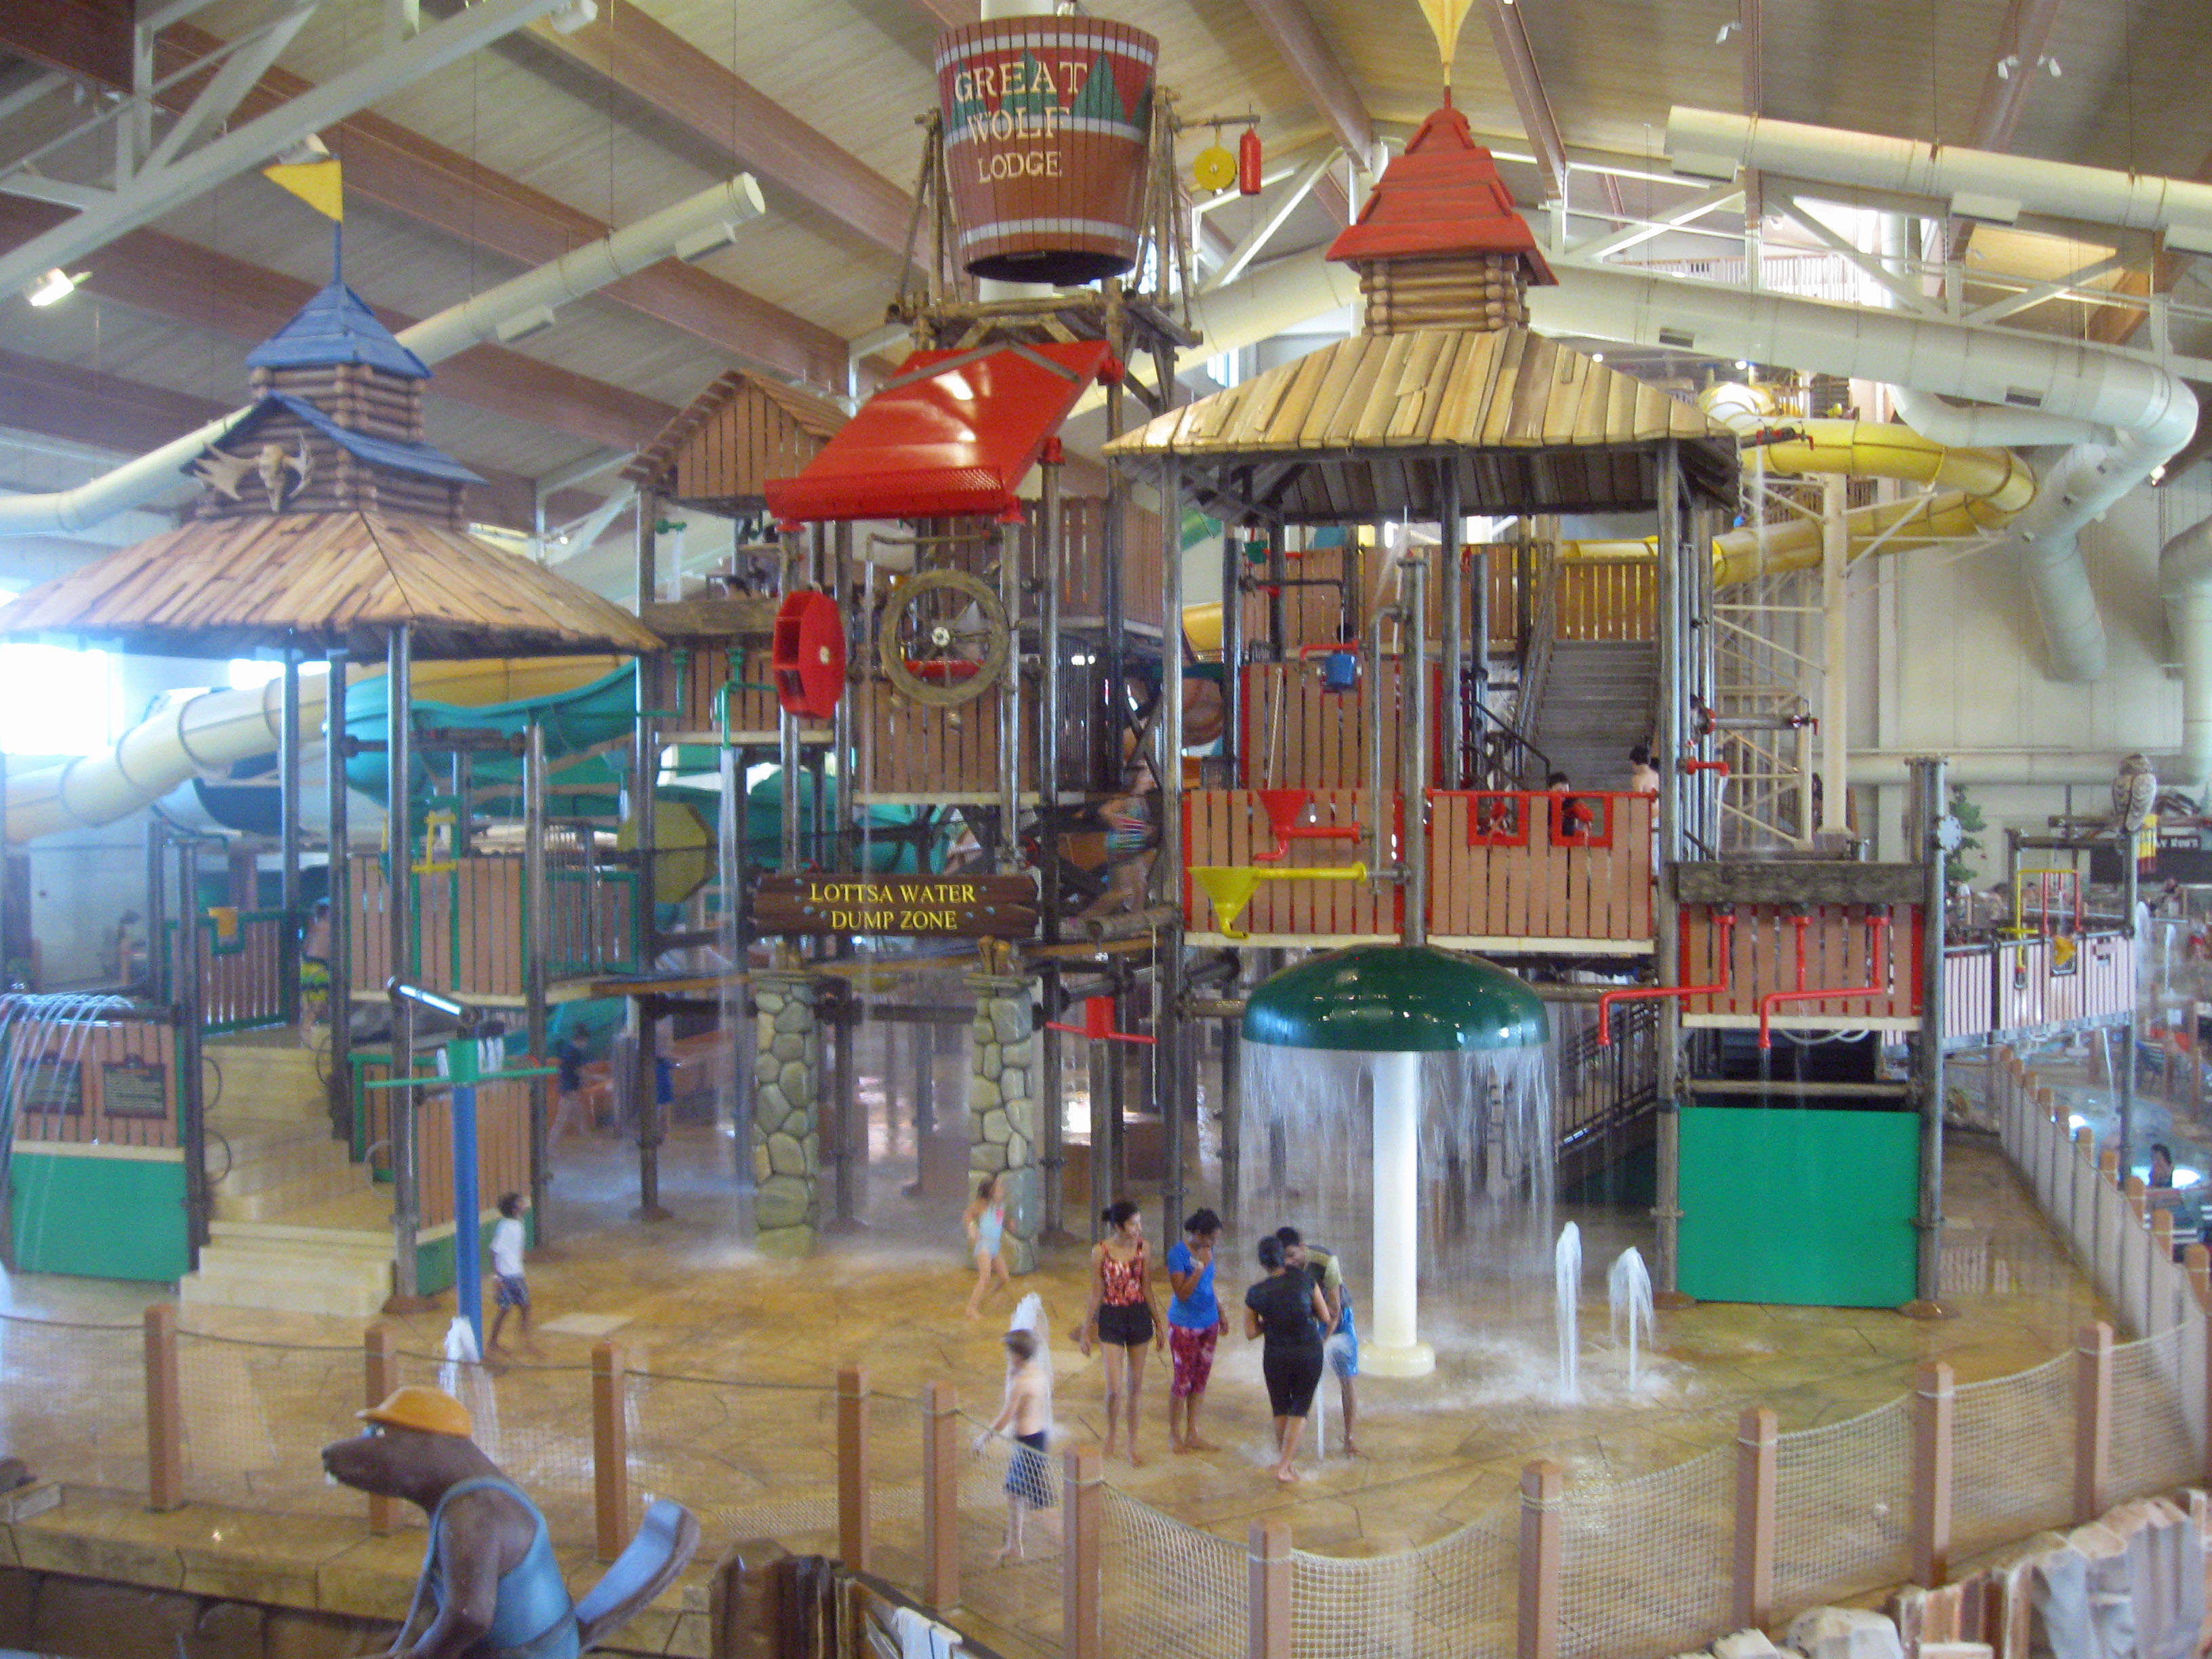 Nov 19, · Book Great Wolf Lodge Grapevine, Grapevine on TripAdvisor: See 6, traveler reviews, candid photos, and great deals for Great Wolf Lodge Grapevine, ranked #11 of 17 hotels in Grapevine and rated 4 of 5 at TripAdvisor.4/4(K).